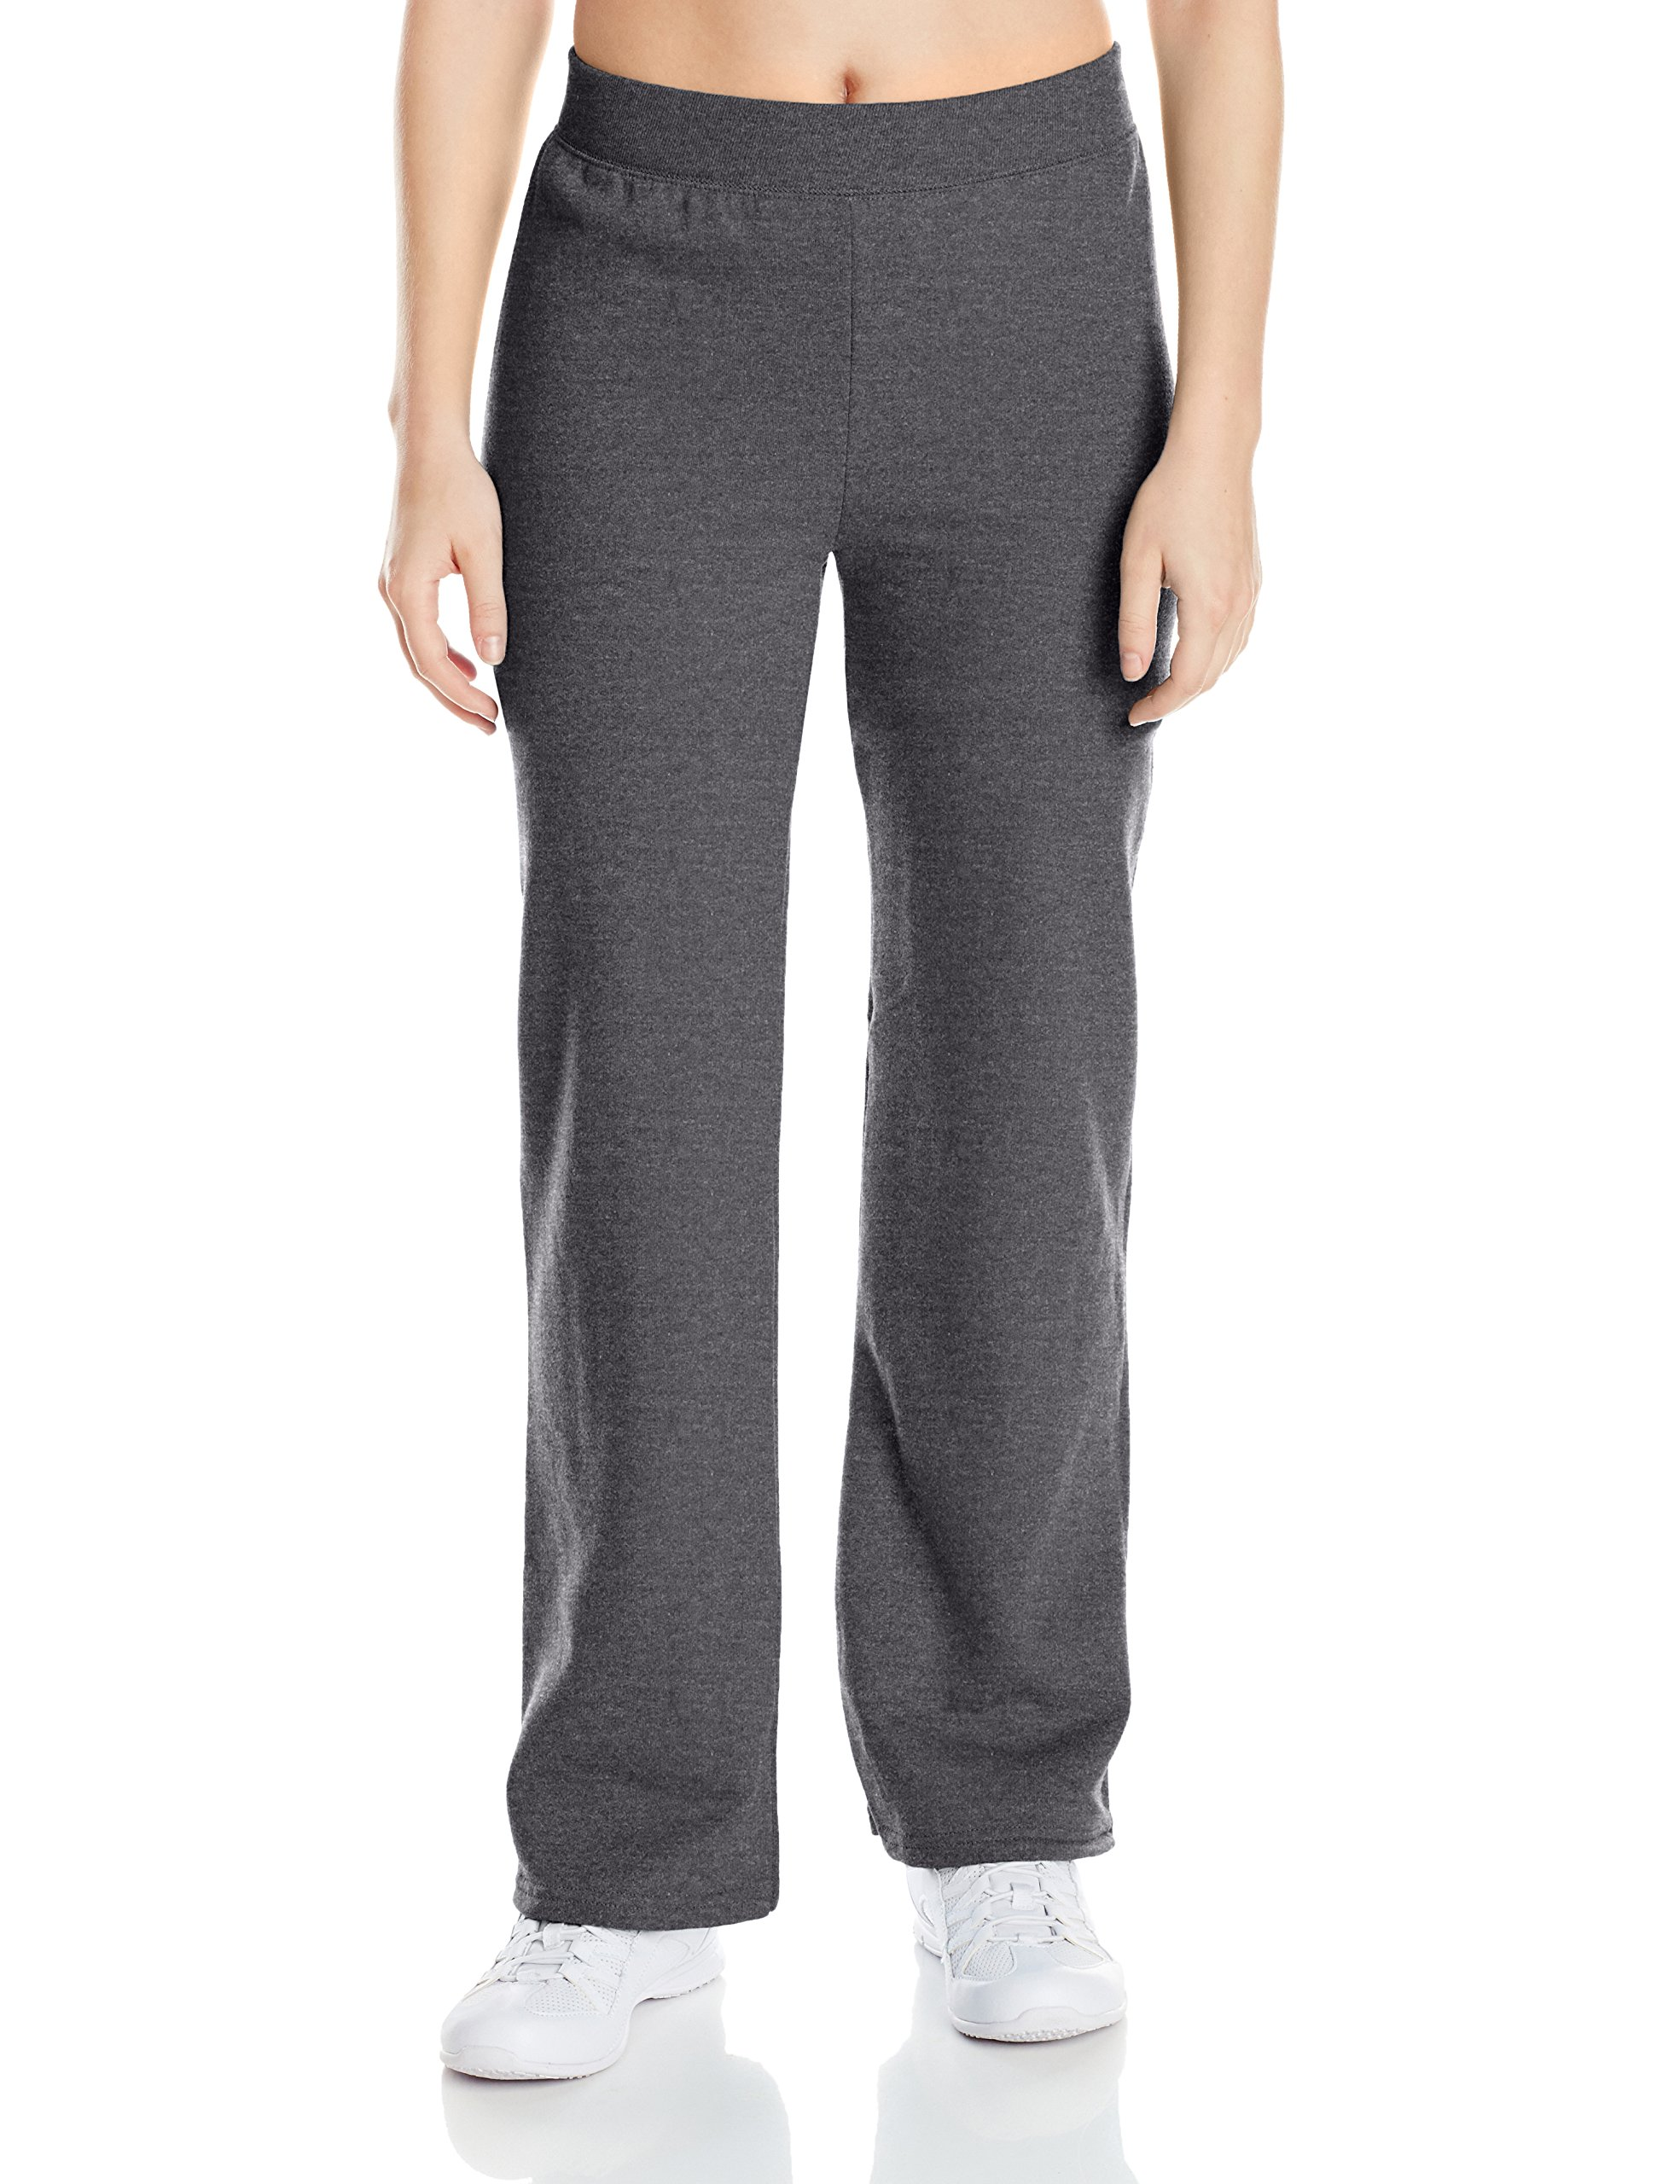 Hanes Women's Middle Rise Sweatpant, Slate Heather, X-Large